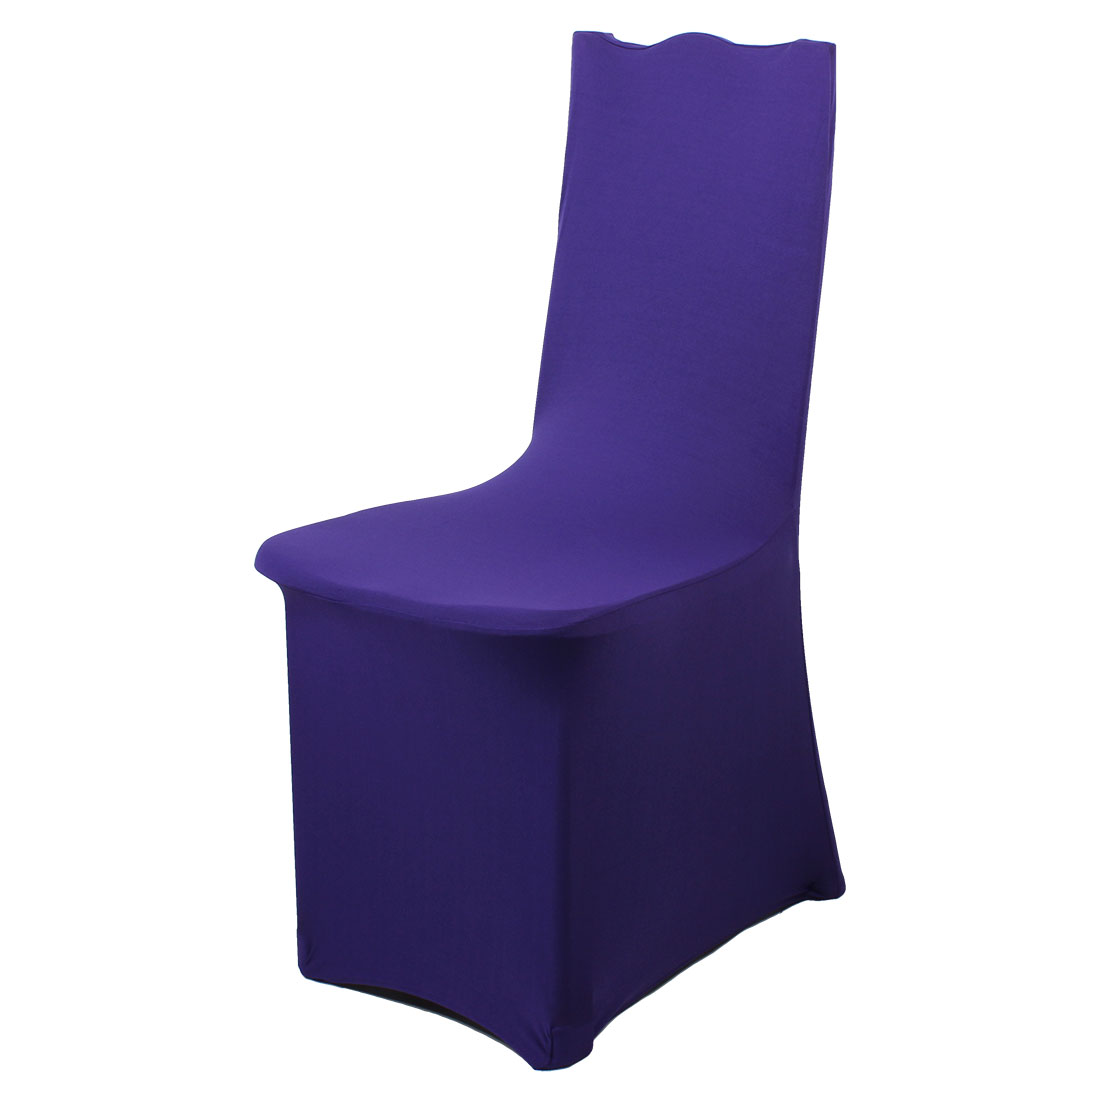 Hotel Dining Room Ceremony Kitchen Bar Chair Slipcover Restaurant Wedding Part Decor Stretchy Removable Seat Cover Dark Purple